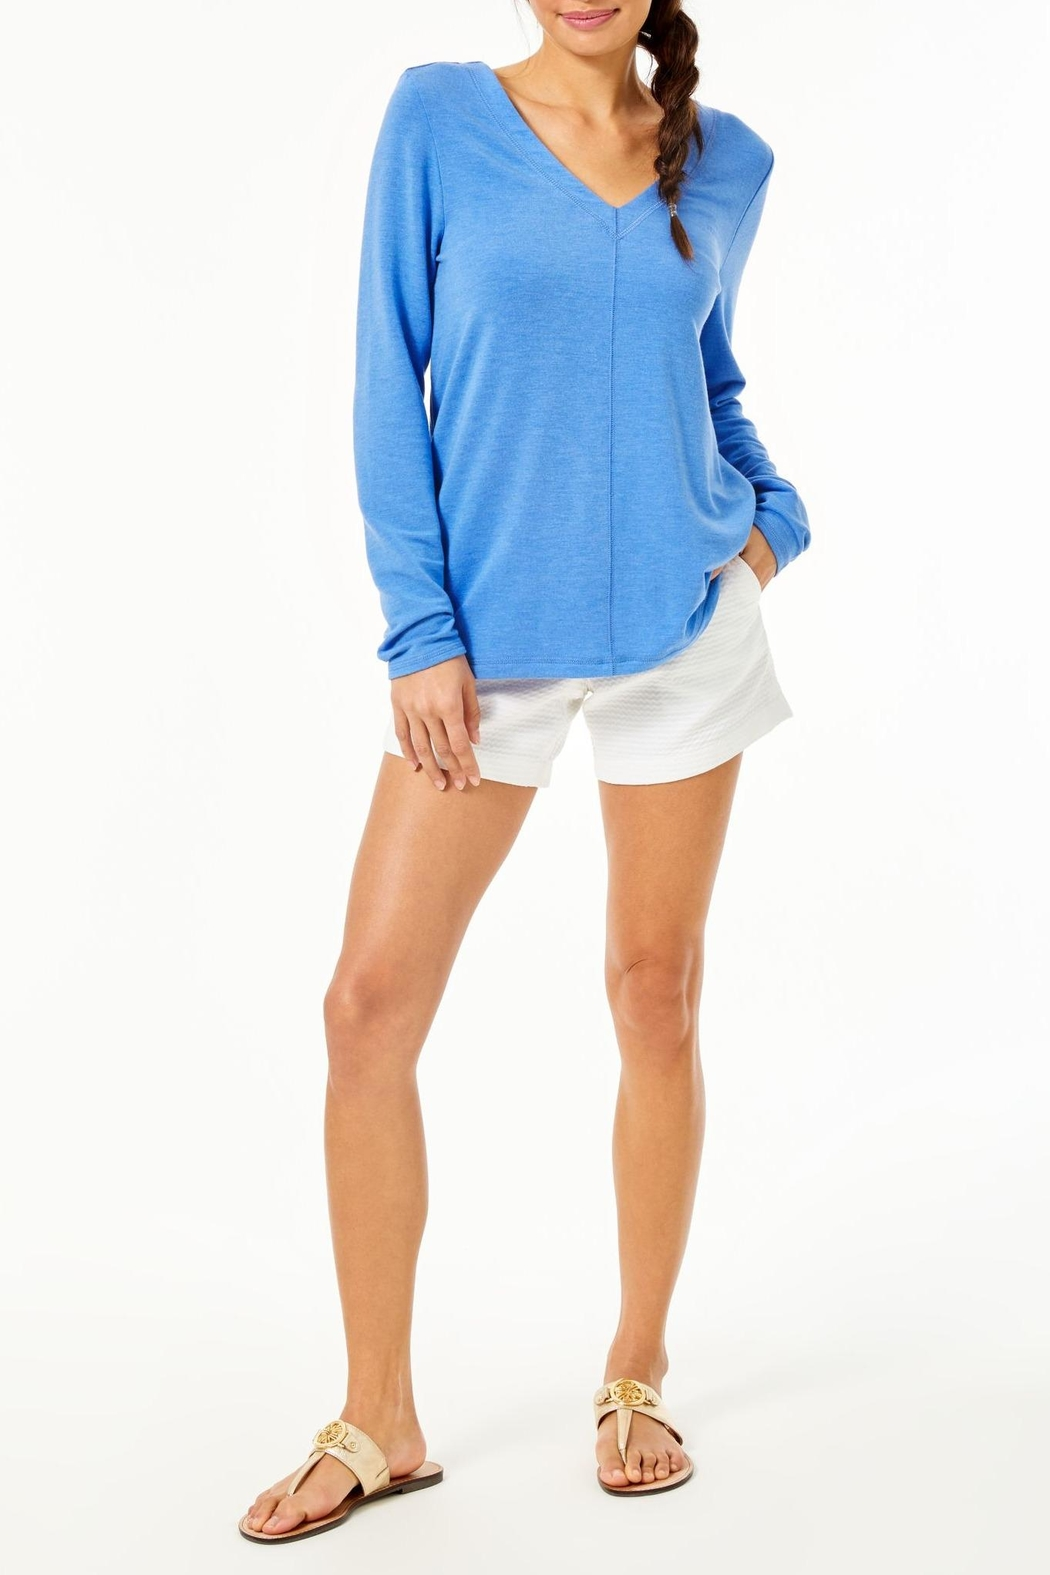 Lilly Pulitzer Luxletic Areli Pullover - Back Cropped Image